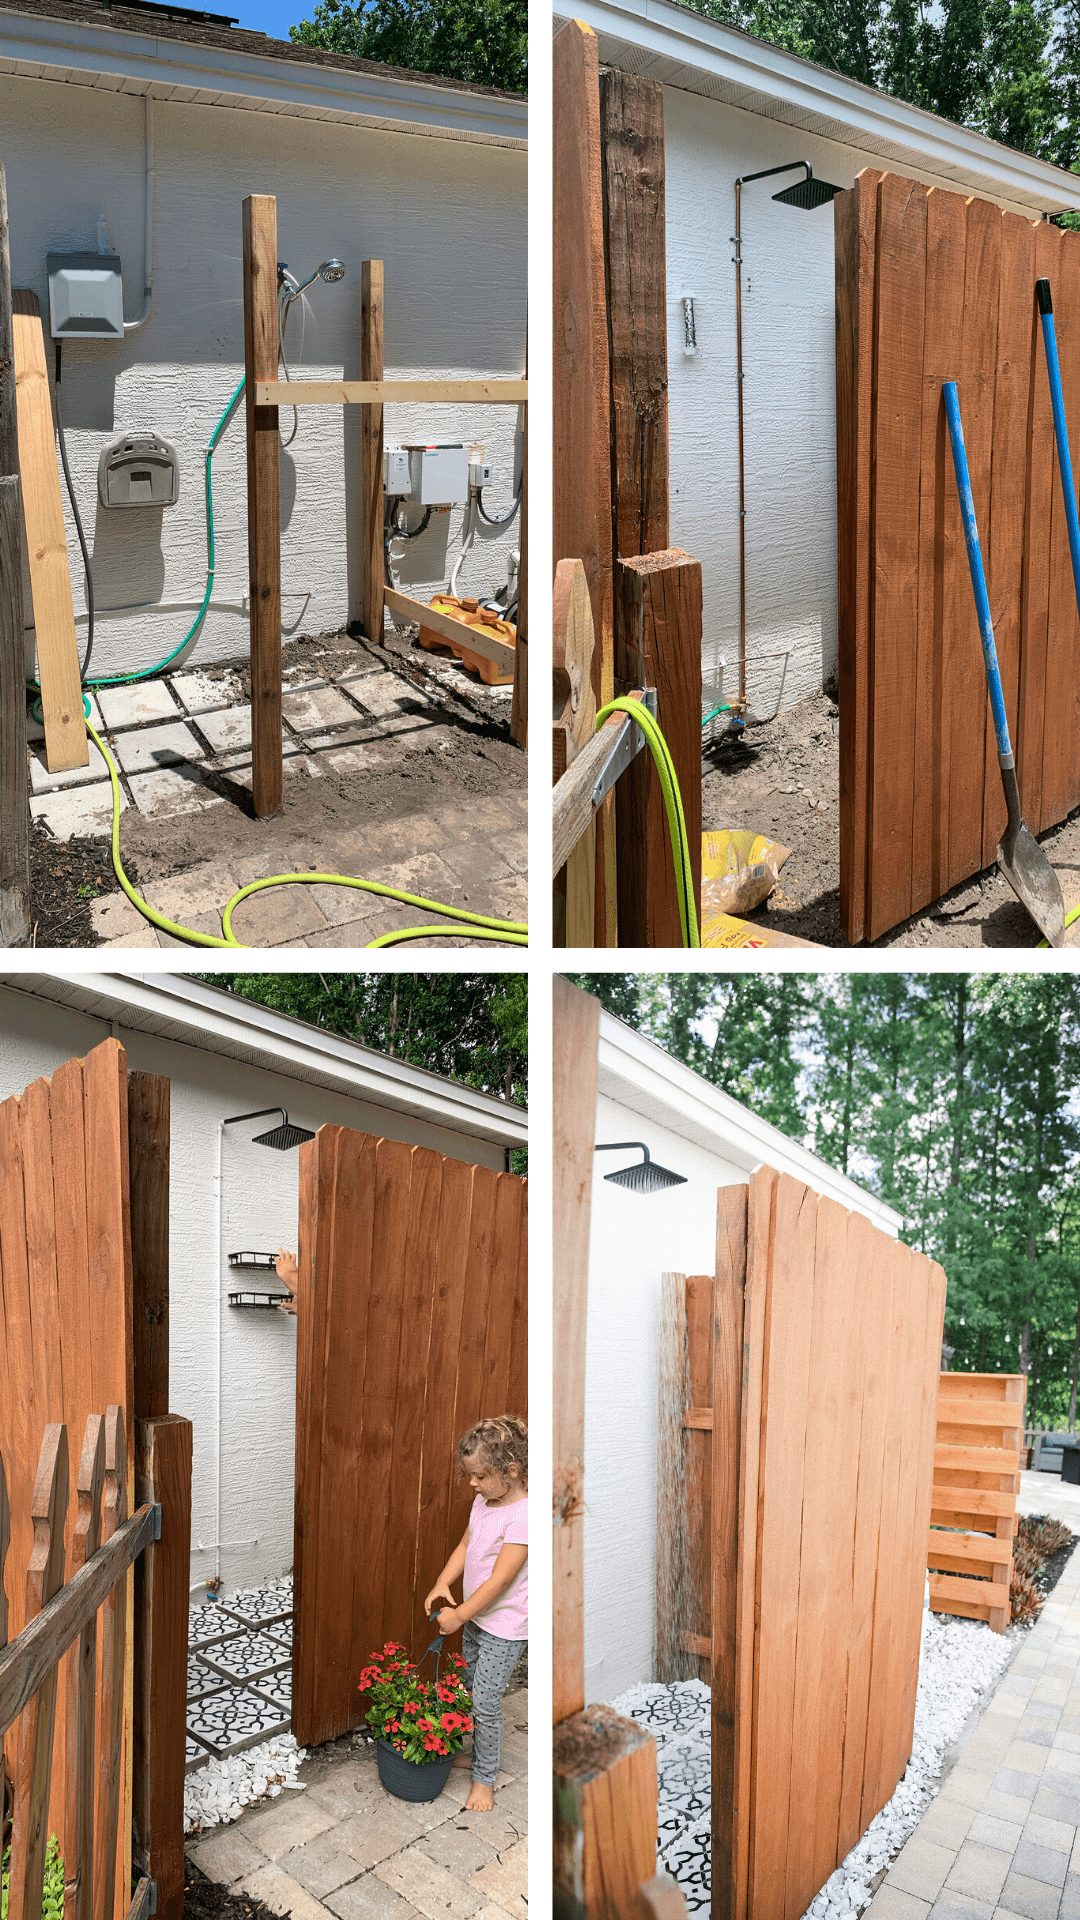 DIY Outdoor Shower Ideas on a Budget for the Ultimate Backyard Oasis | DIY Outdoor Shower by popular Florida DIY blog, Fresh Mommy Blog: before and after image of a DIY outdoor shower.